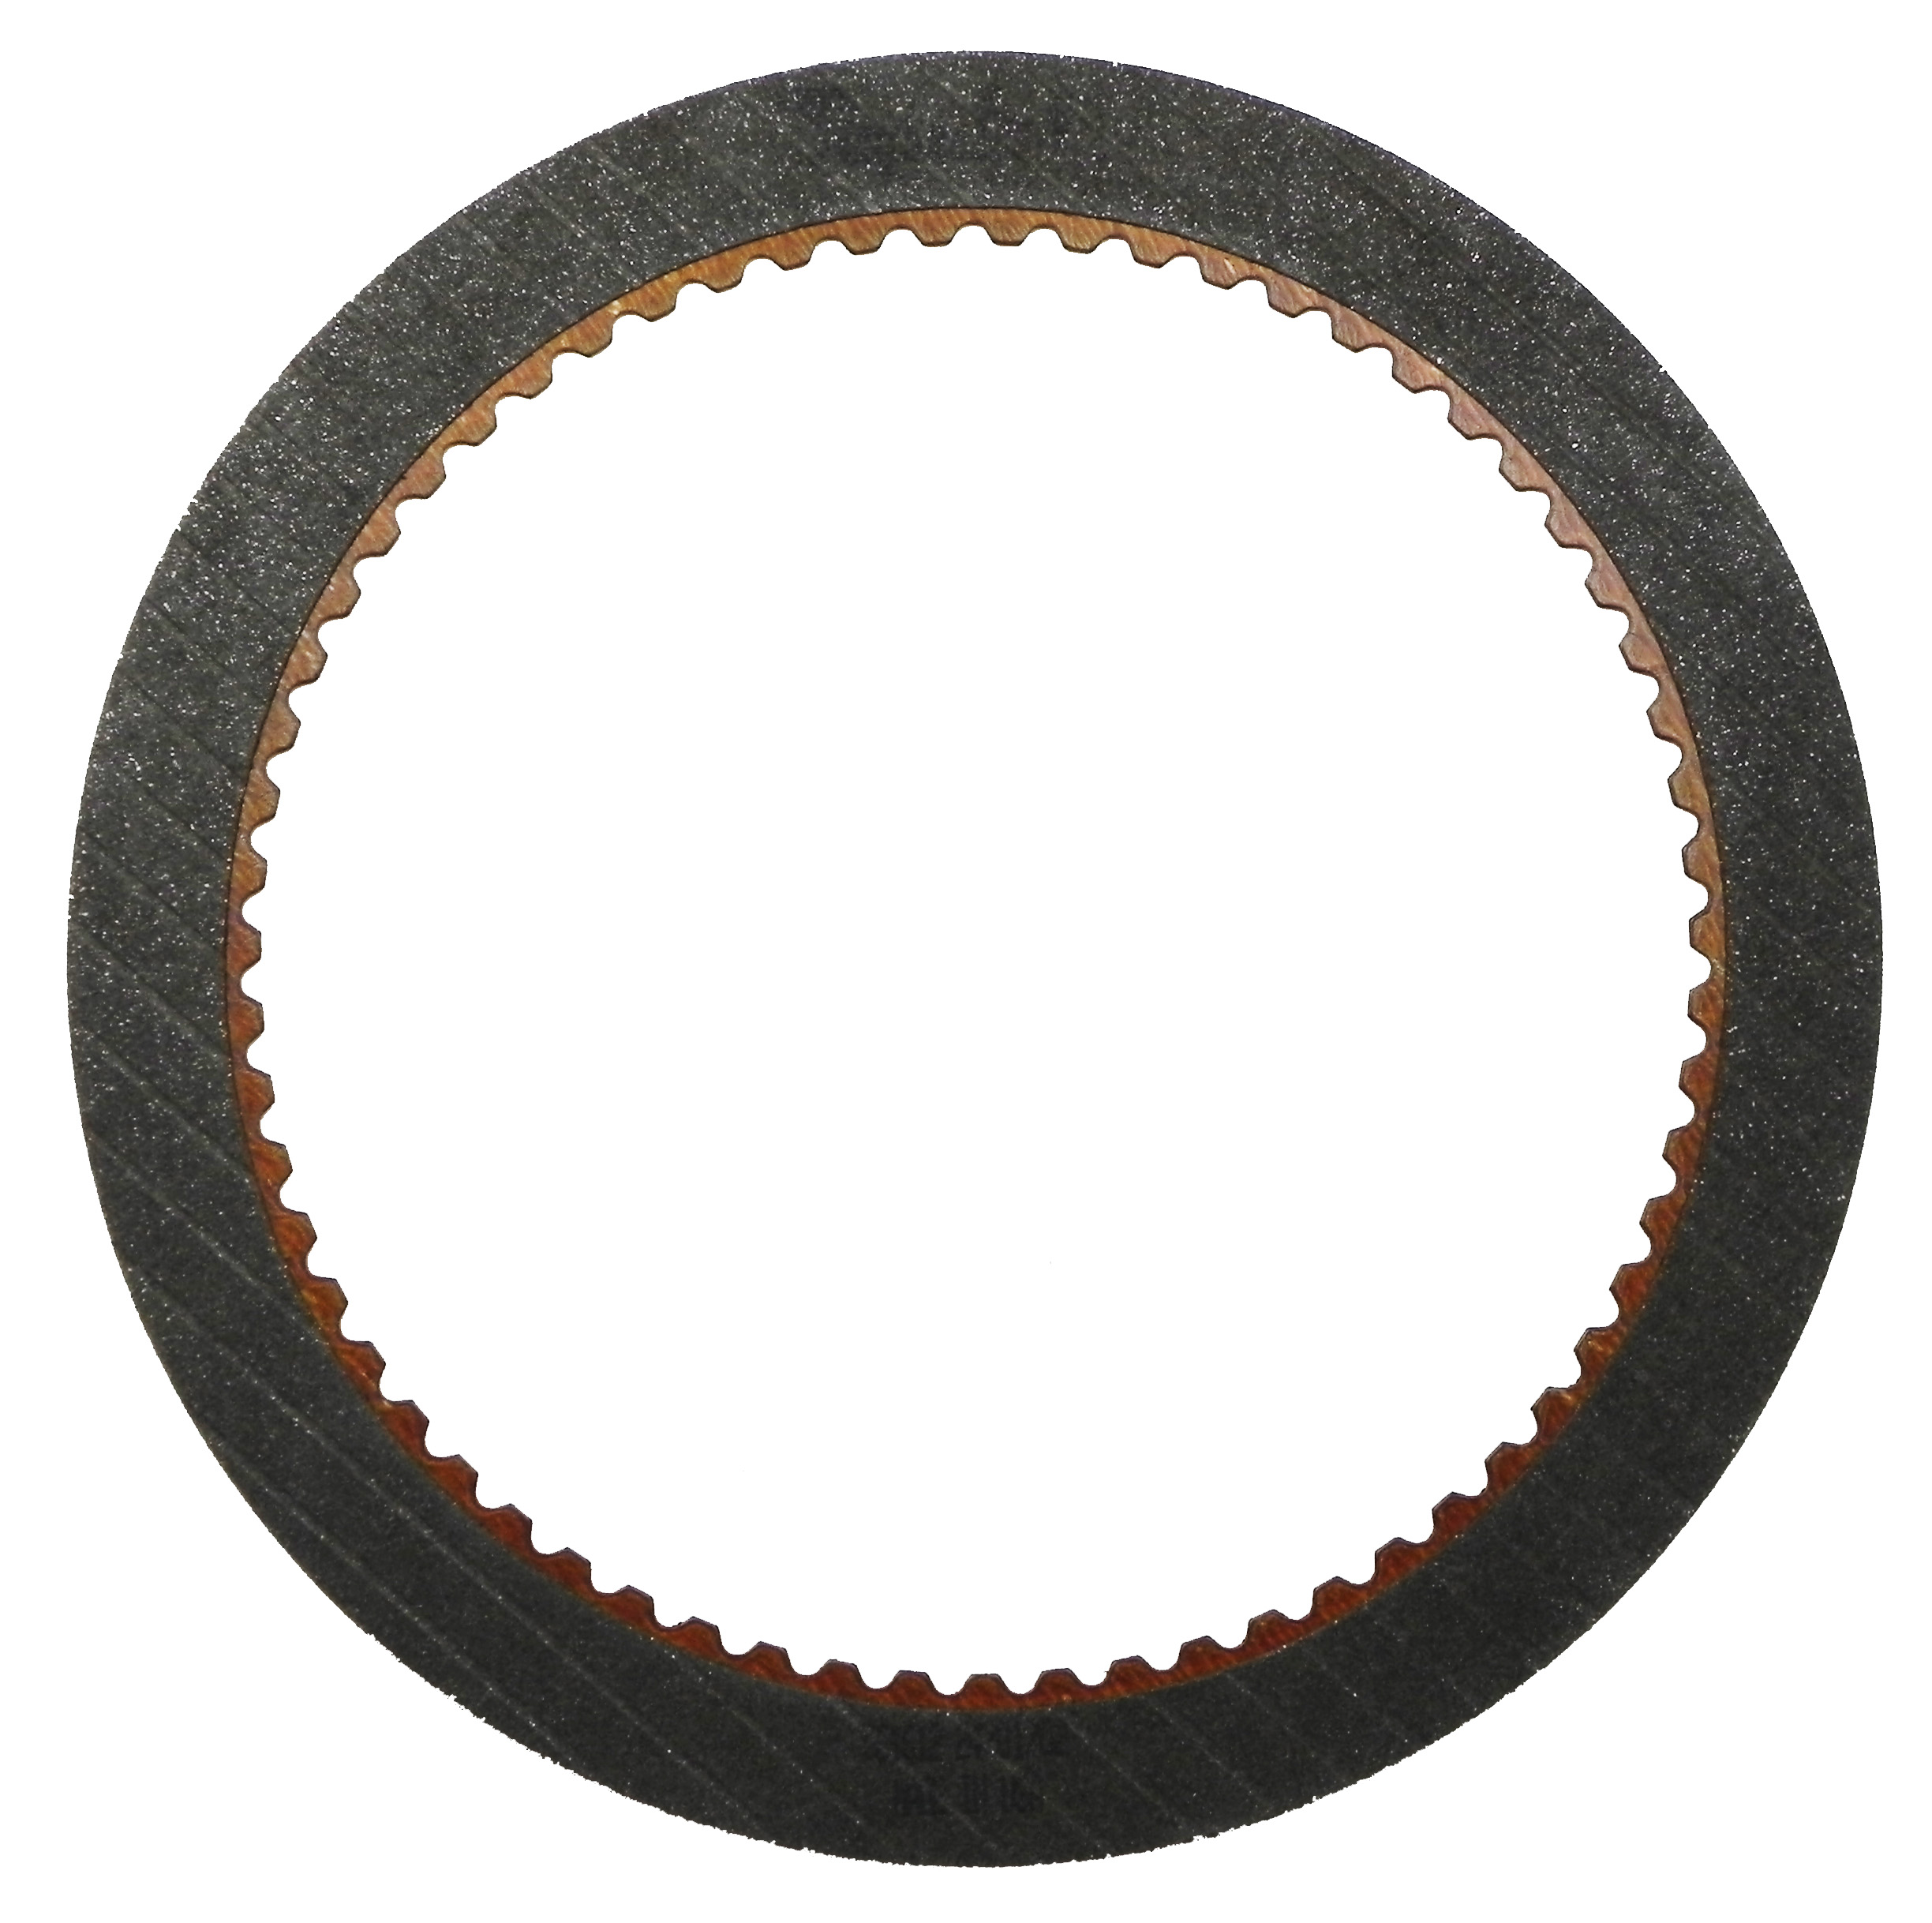 R561612 | 1986-ON Friction Clutch Plate High Energy Direct, Intermediate High Energy